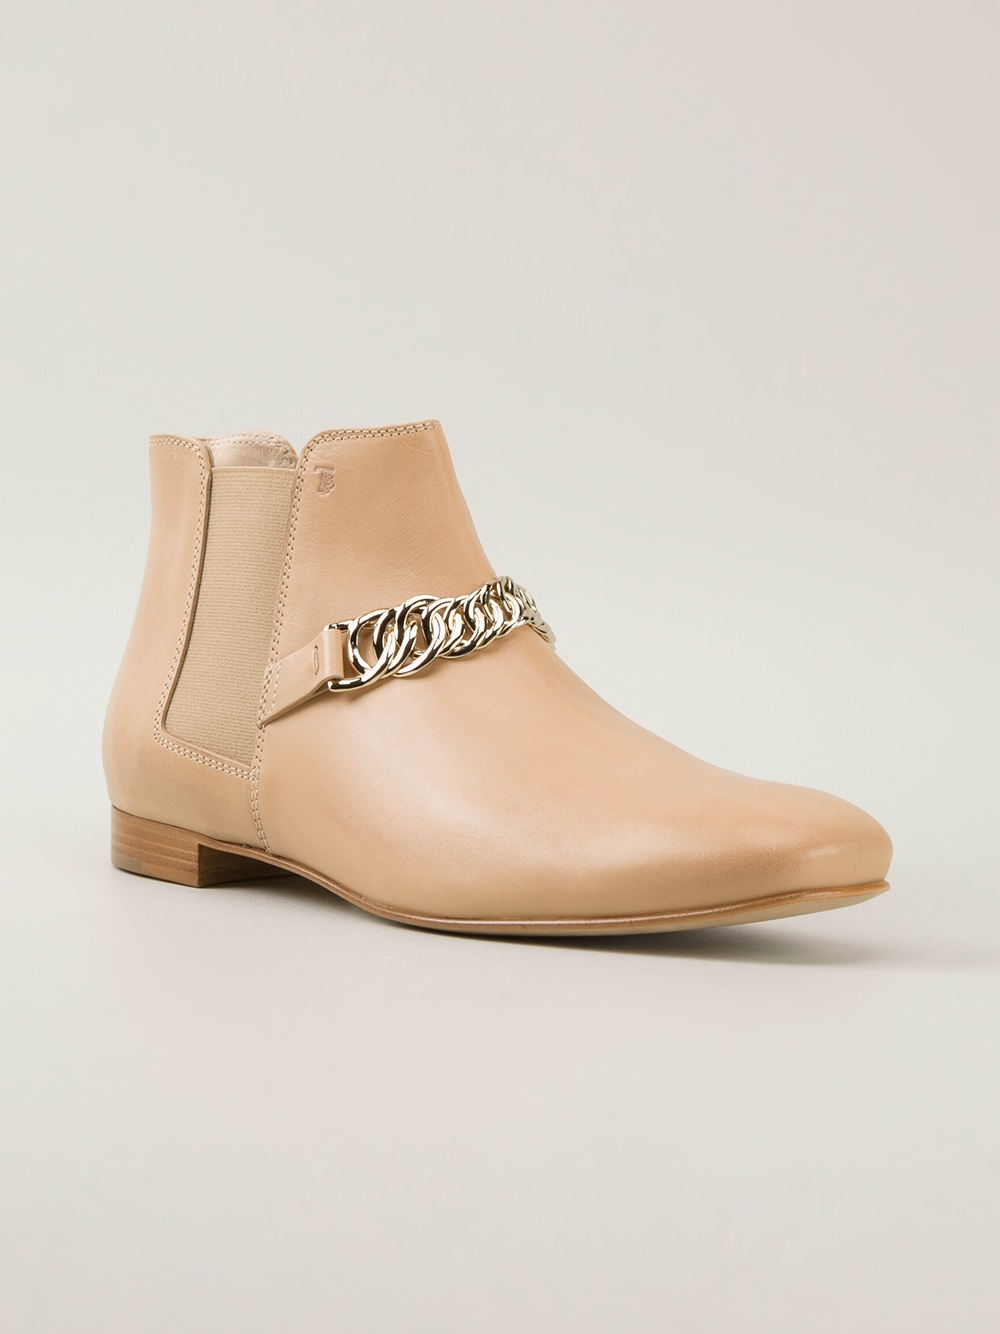 tod 39 s low chelsea boot in beige nude neutrals lyst. Black Bedroom Furniture Sets. Home Design Ideas